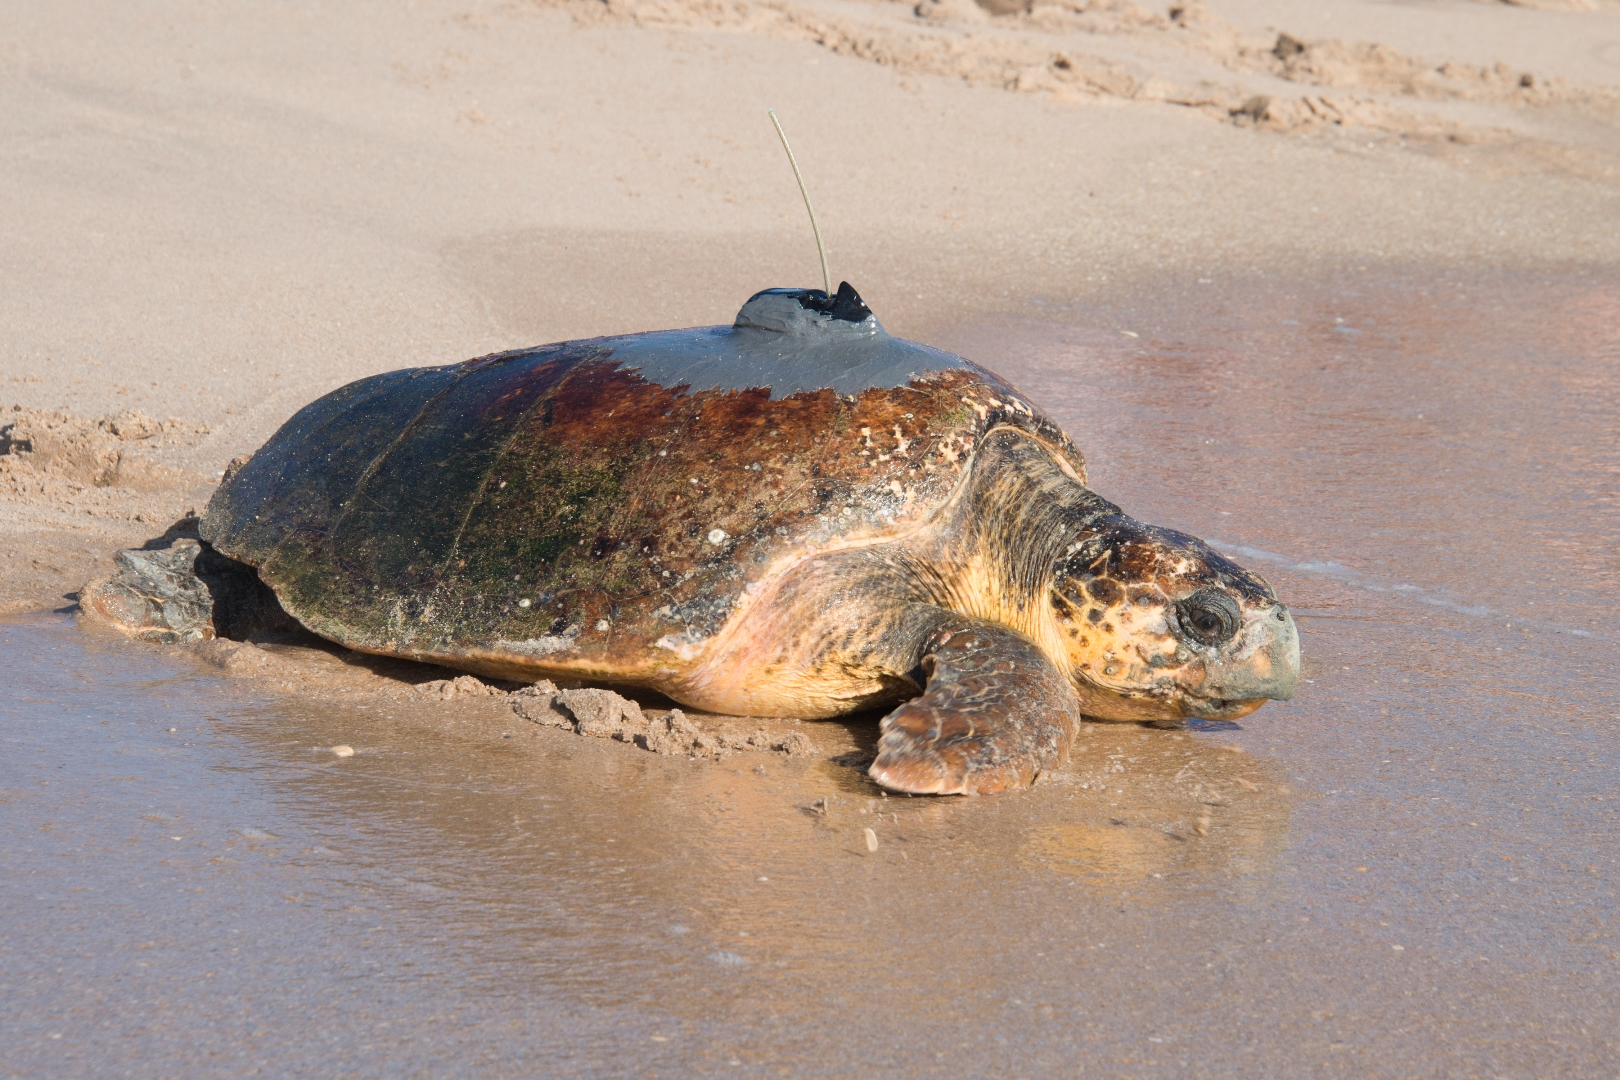 A loggerhead turtle named Turtlette is equipped with a satellite transmitter on her carapace and released from Melbourne Beach, Florida for this year's Tour de Turtles.